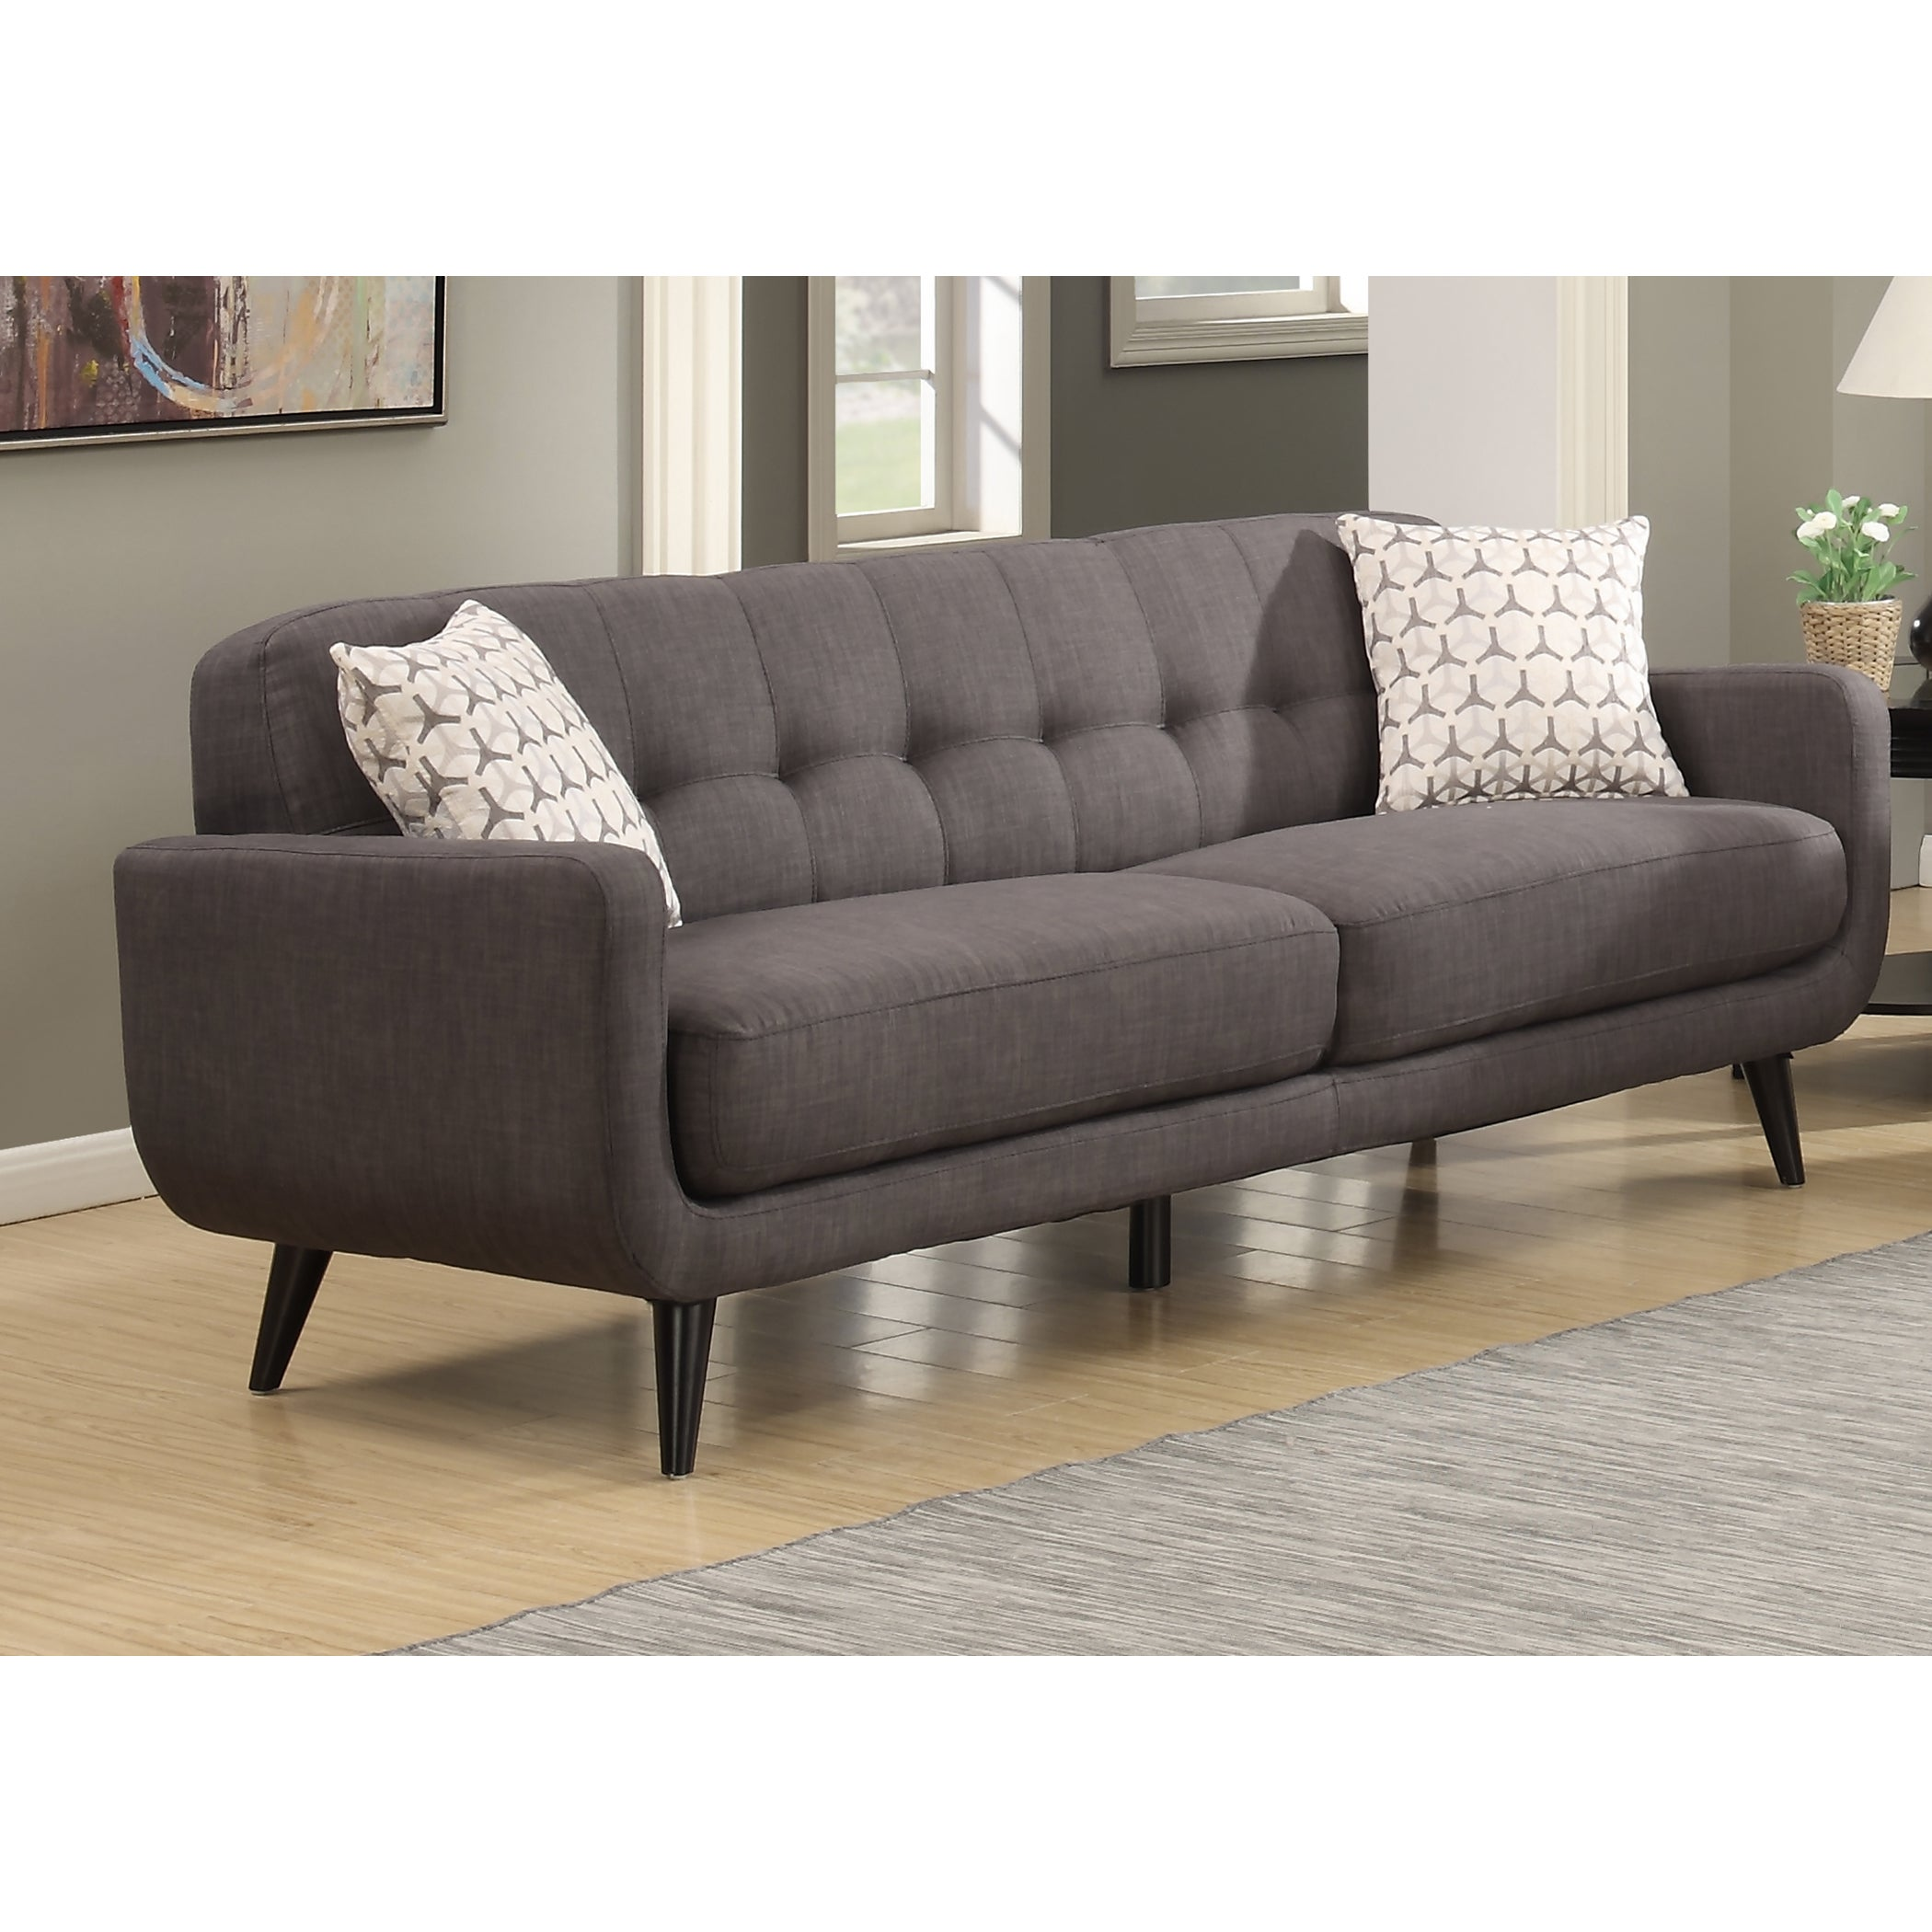 Bon Shop Crystal Mid Century Modern Charcoal Sofa   Free Shipping On Orders  Over $45   Overstock.com   12637209